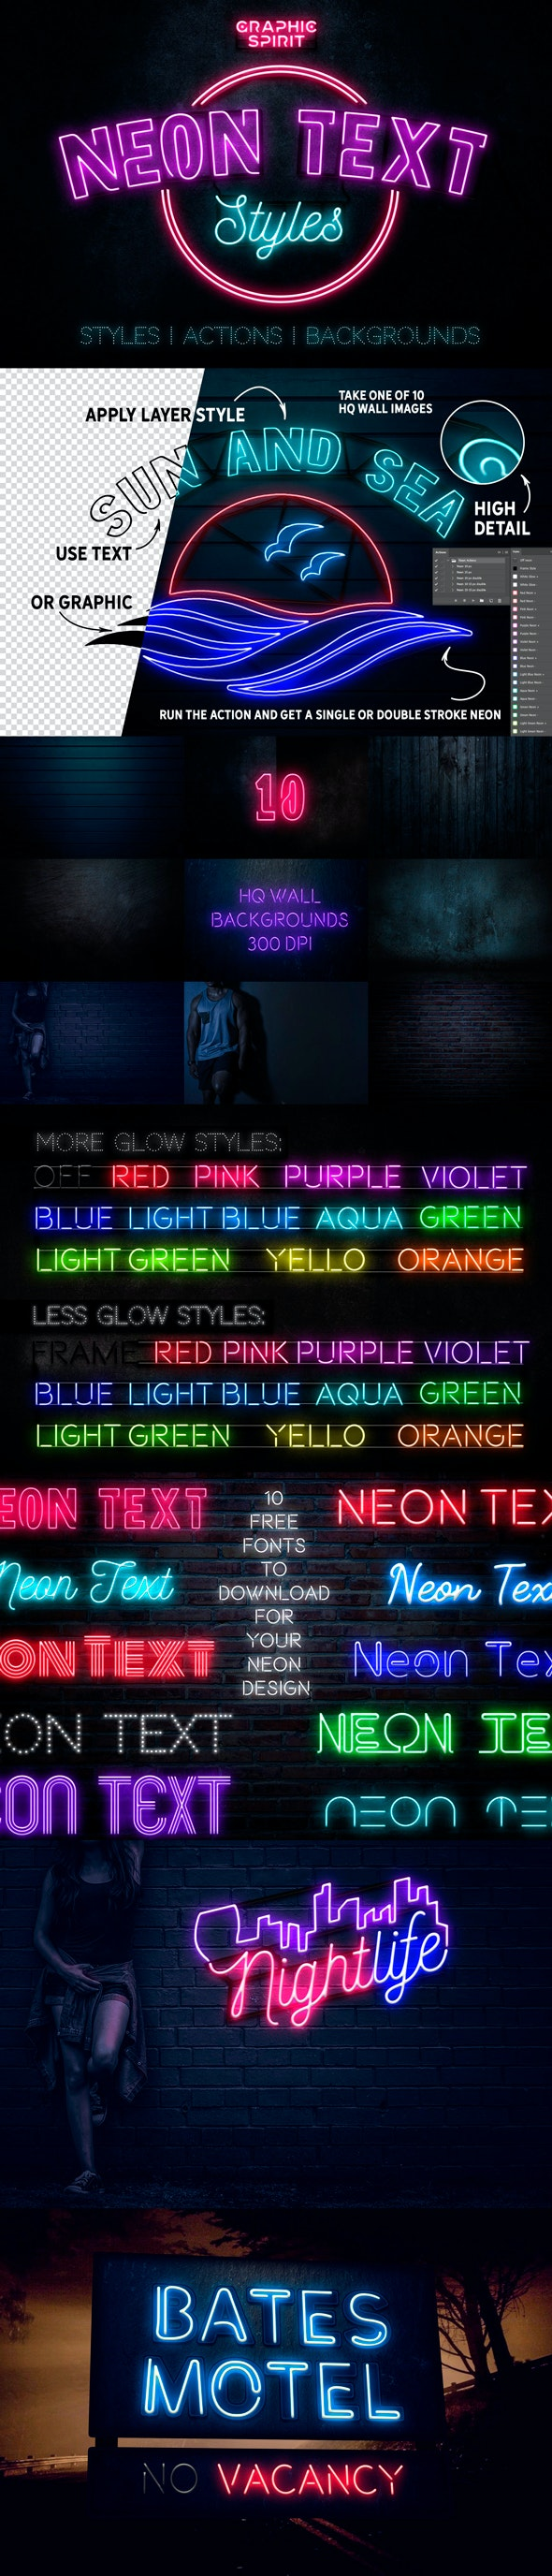 Neon Text Layer Styles & Extras - Text Effects Styles